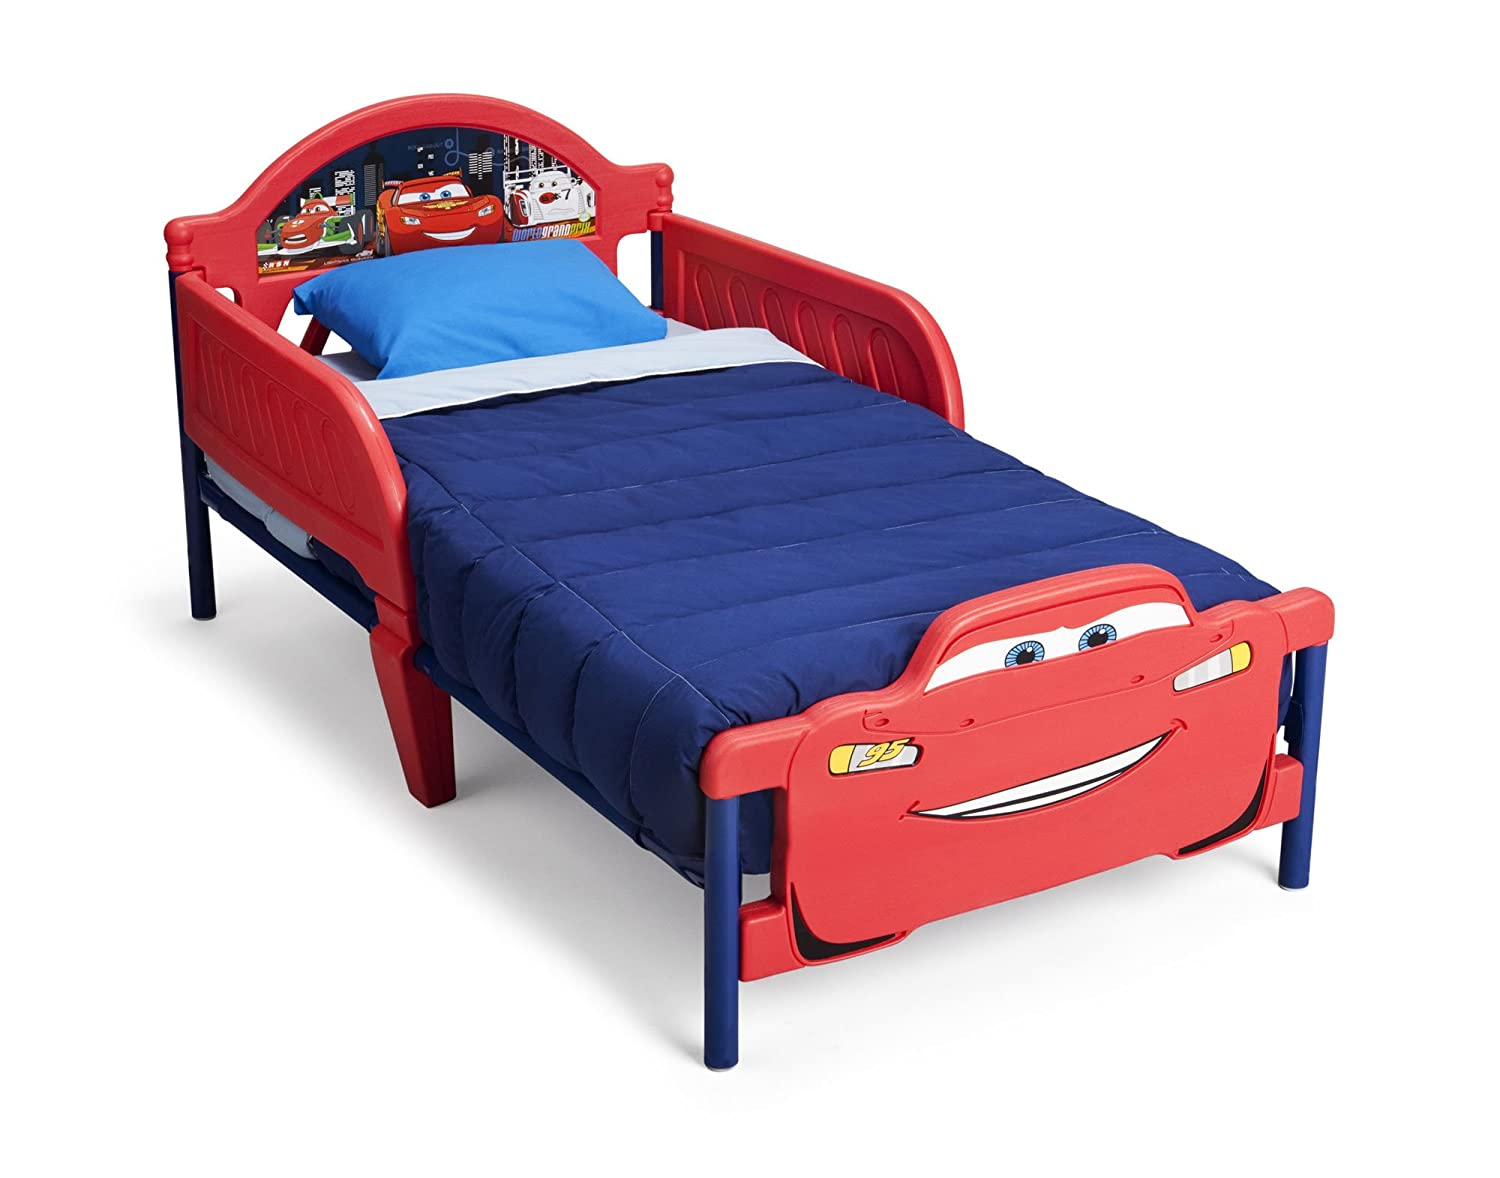 clean yellow iron sets cheap beds bed macys latest fitted spongebob headboard vikingwaterford page rectangle bedroom pillow blue smooth with case painted easy sheet best frame extra framework funny toddler teak antique com and pipped